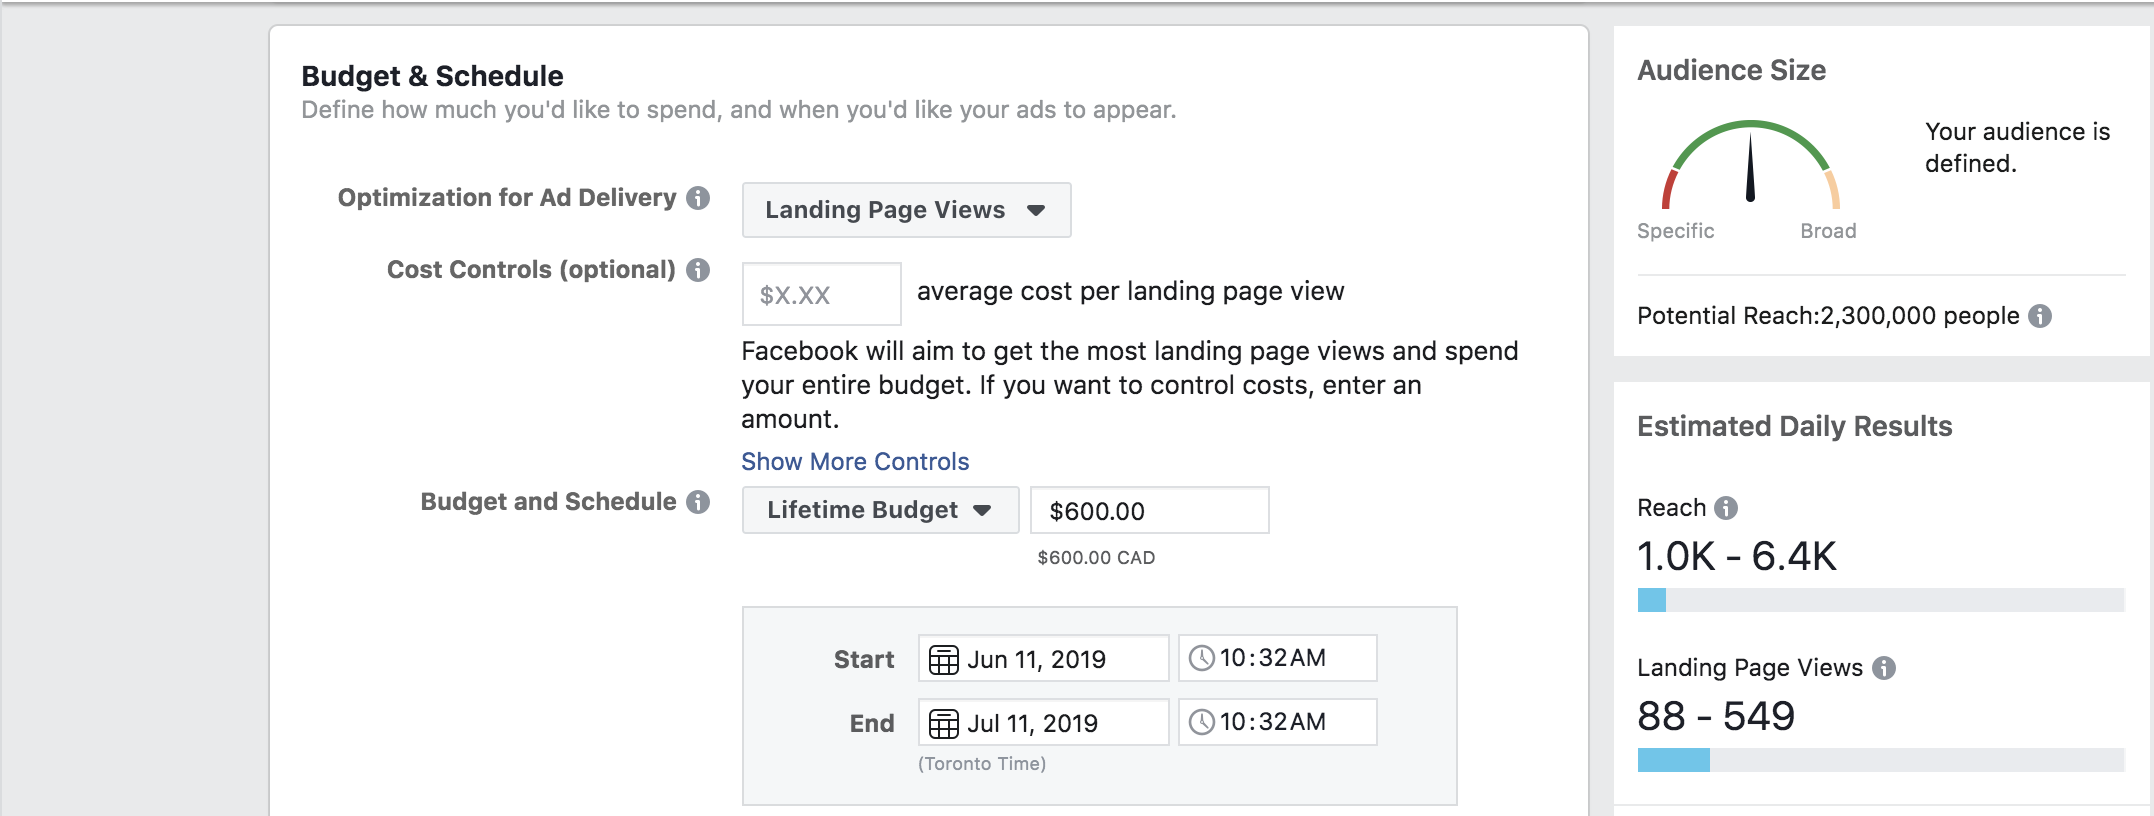 Example of a    Facebook ad    with a budget of $600.00